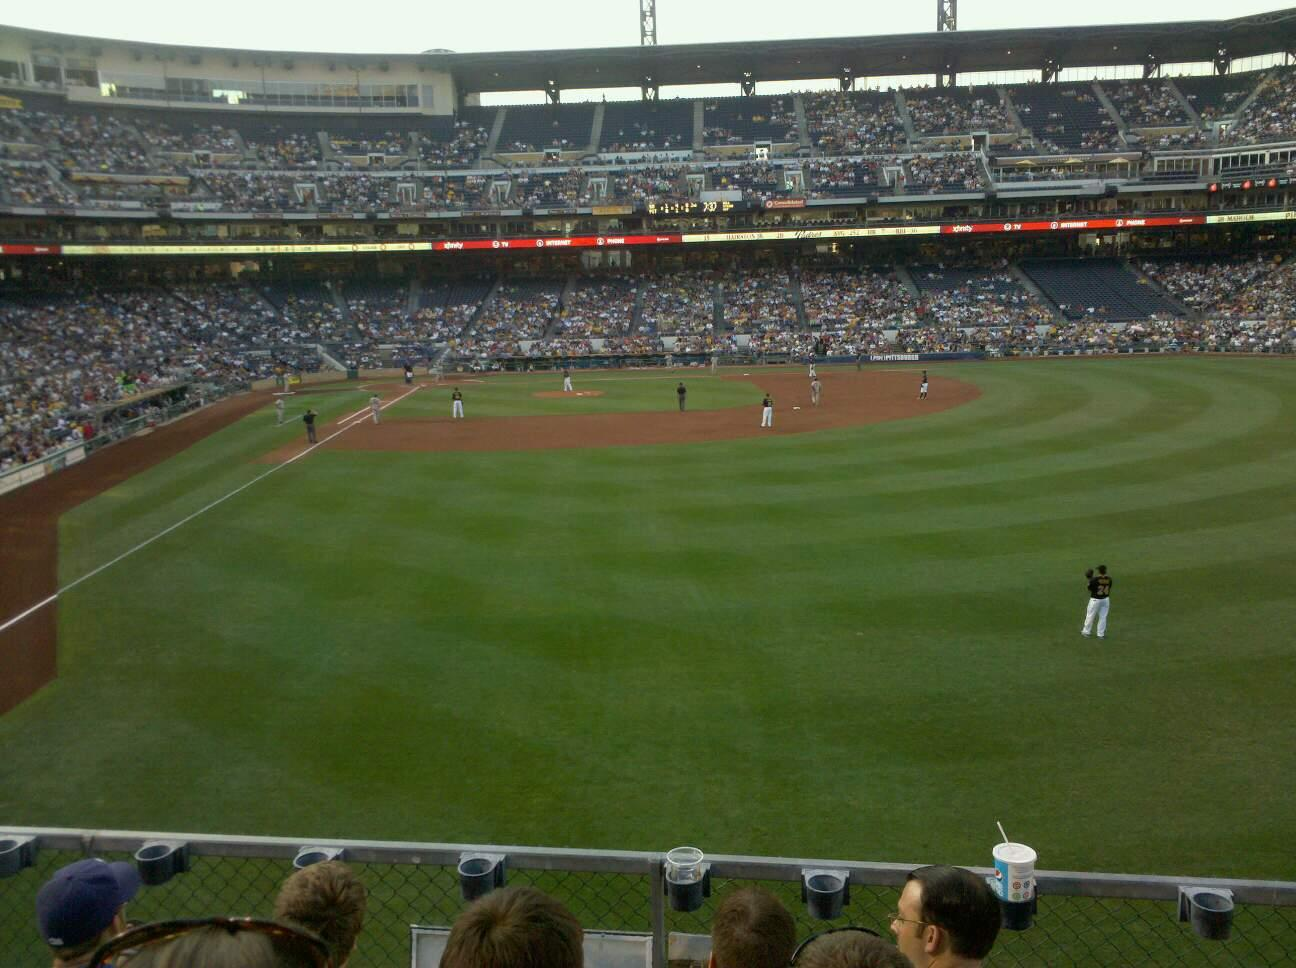 PNC Park Section 143 Row 4 Seat 1